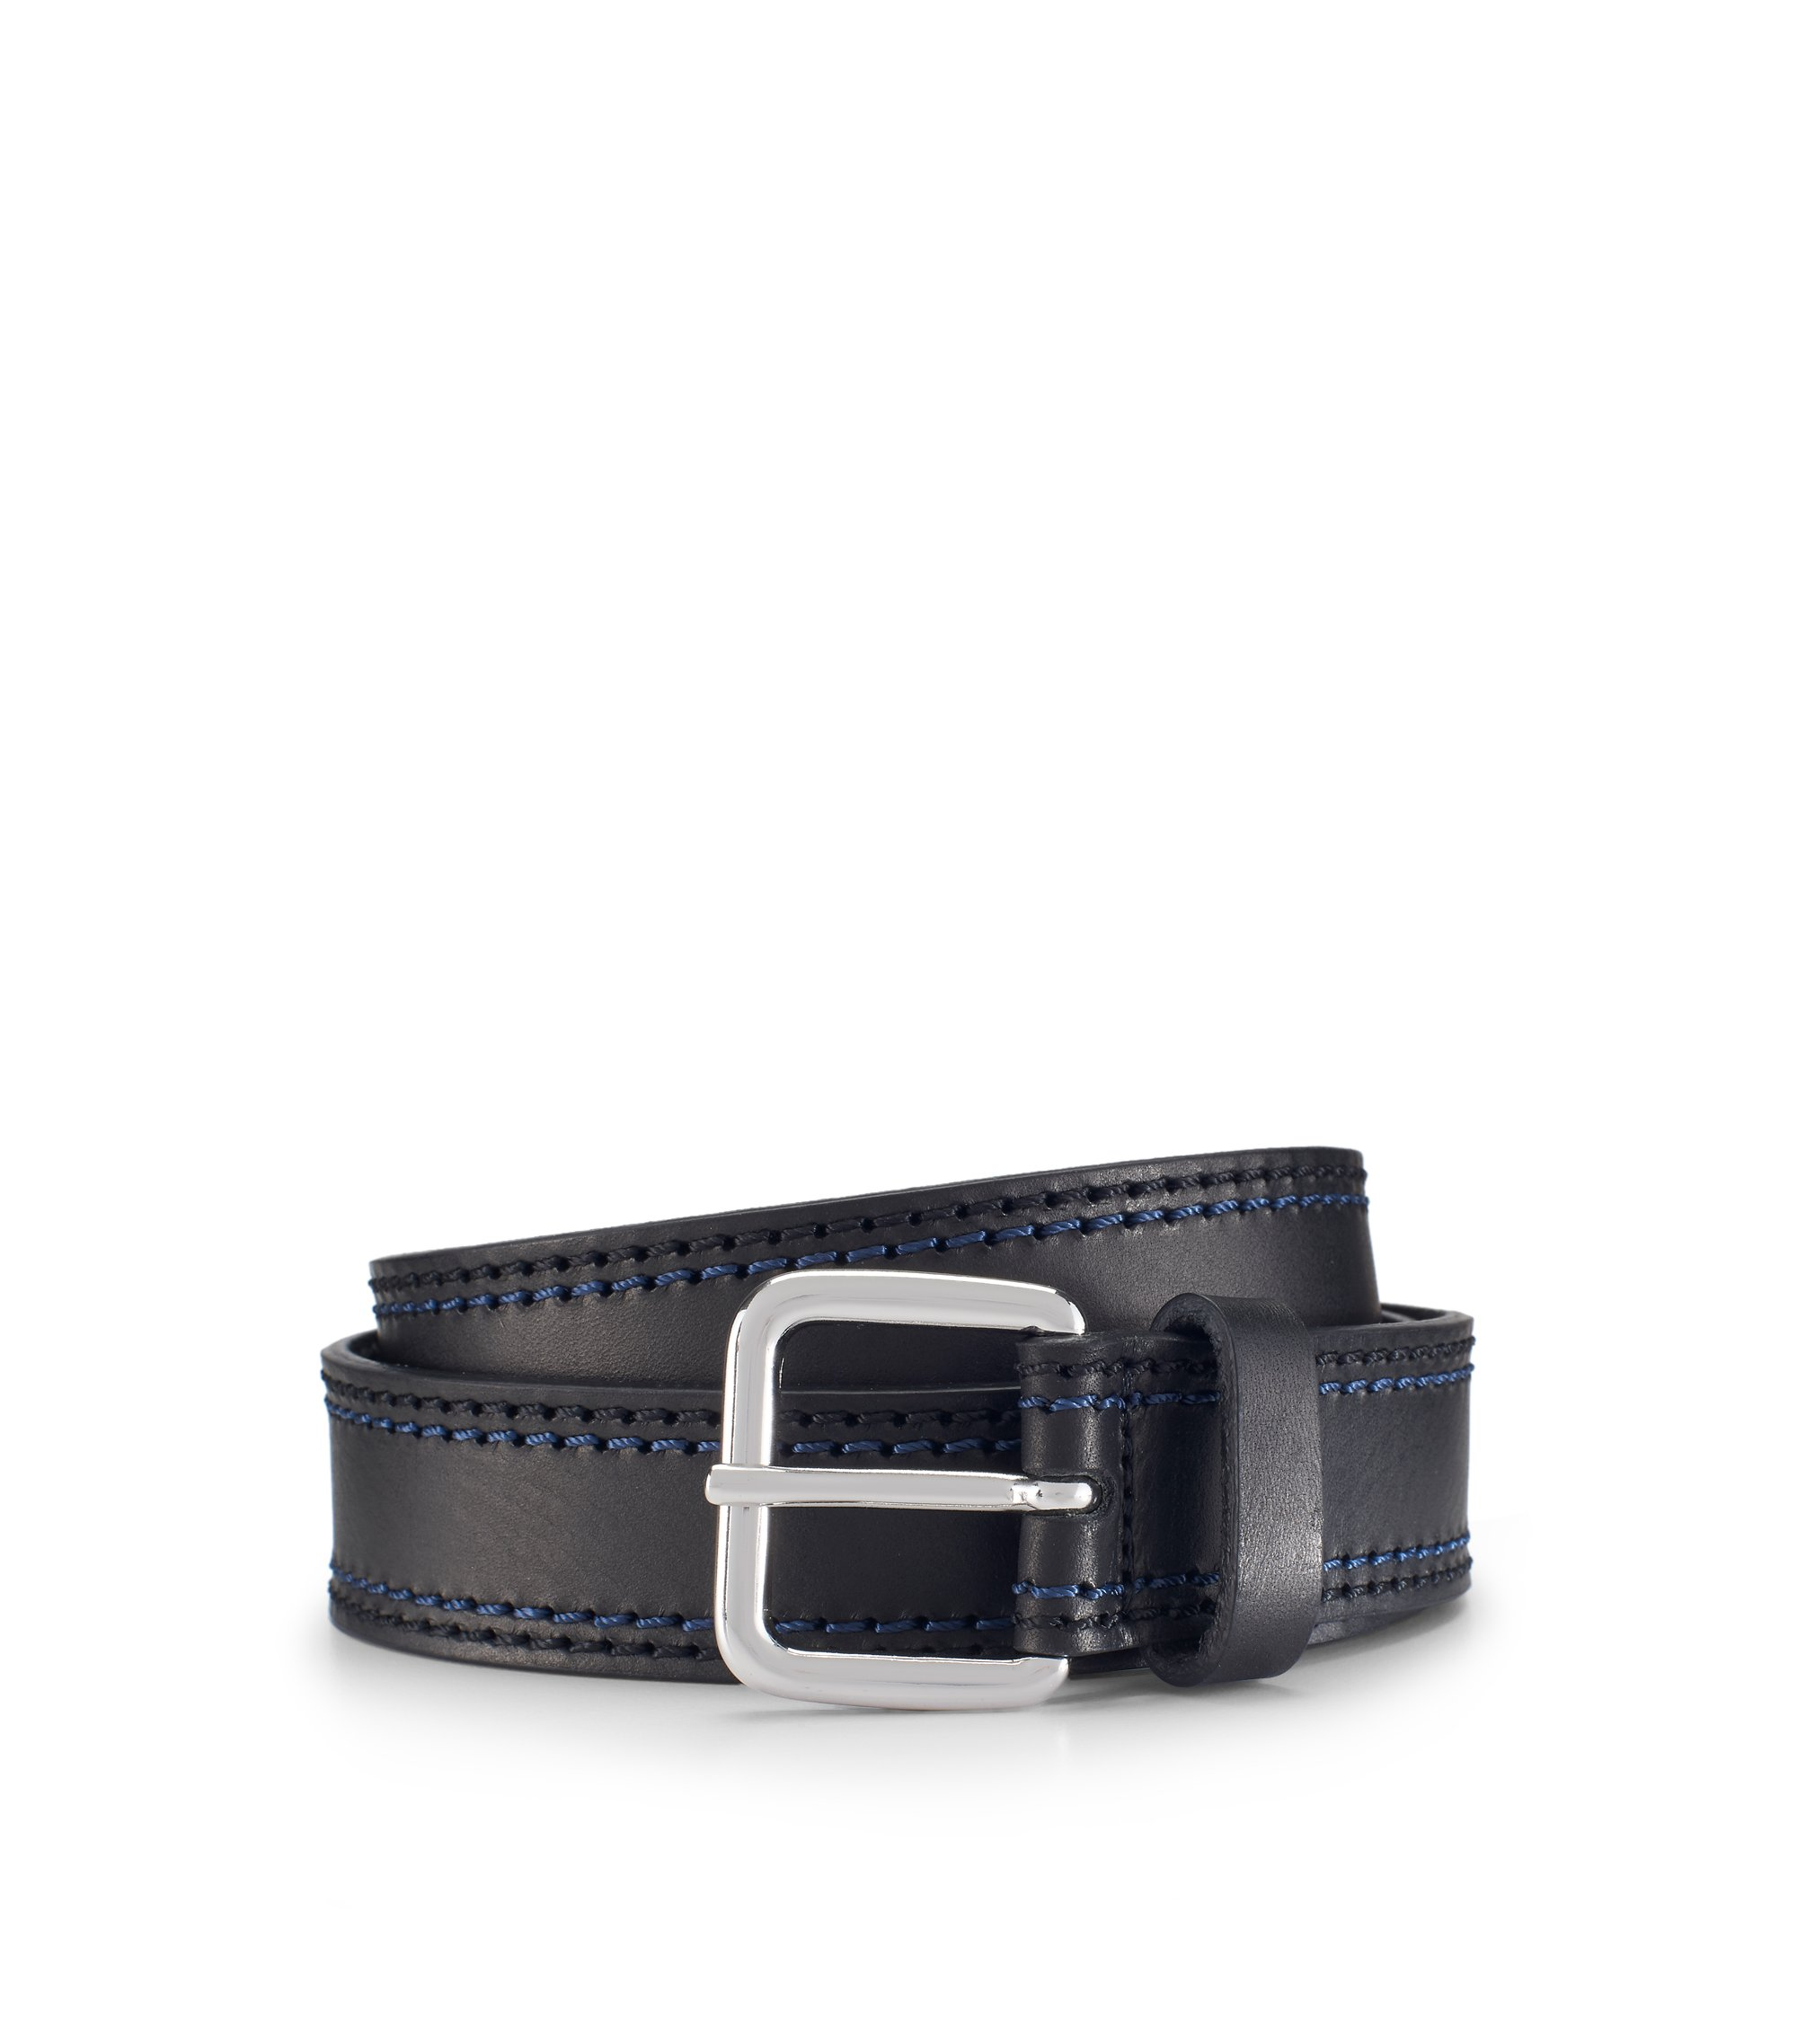 Stitched Leather Belt | Giolle, Black